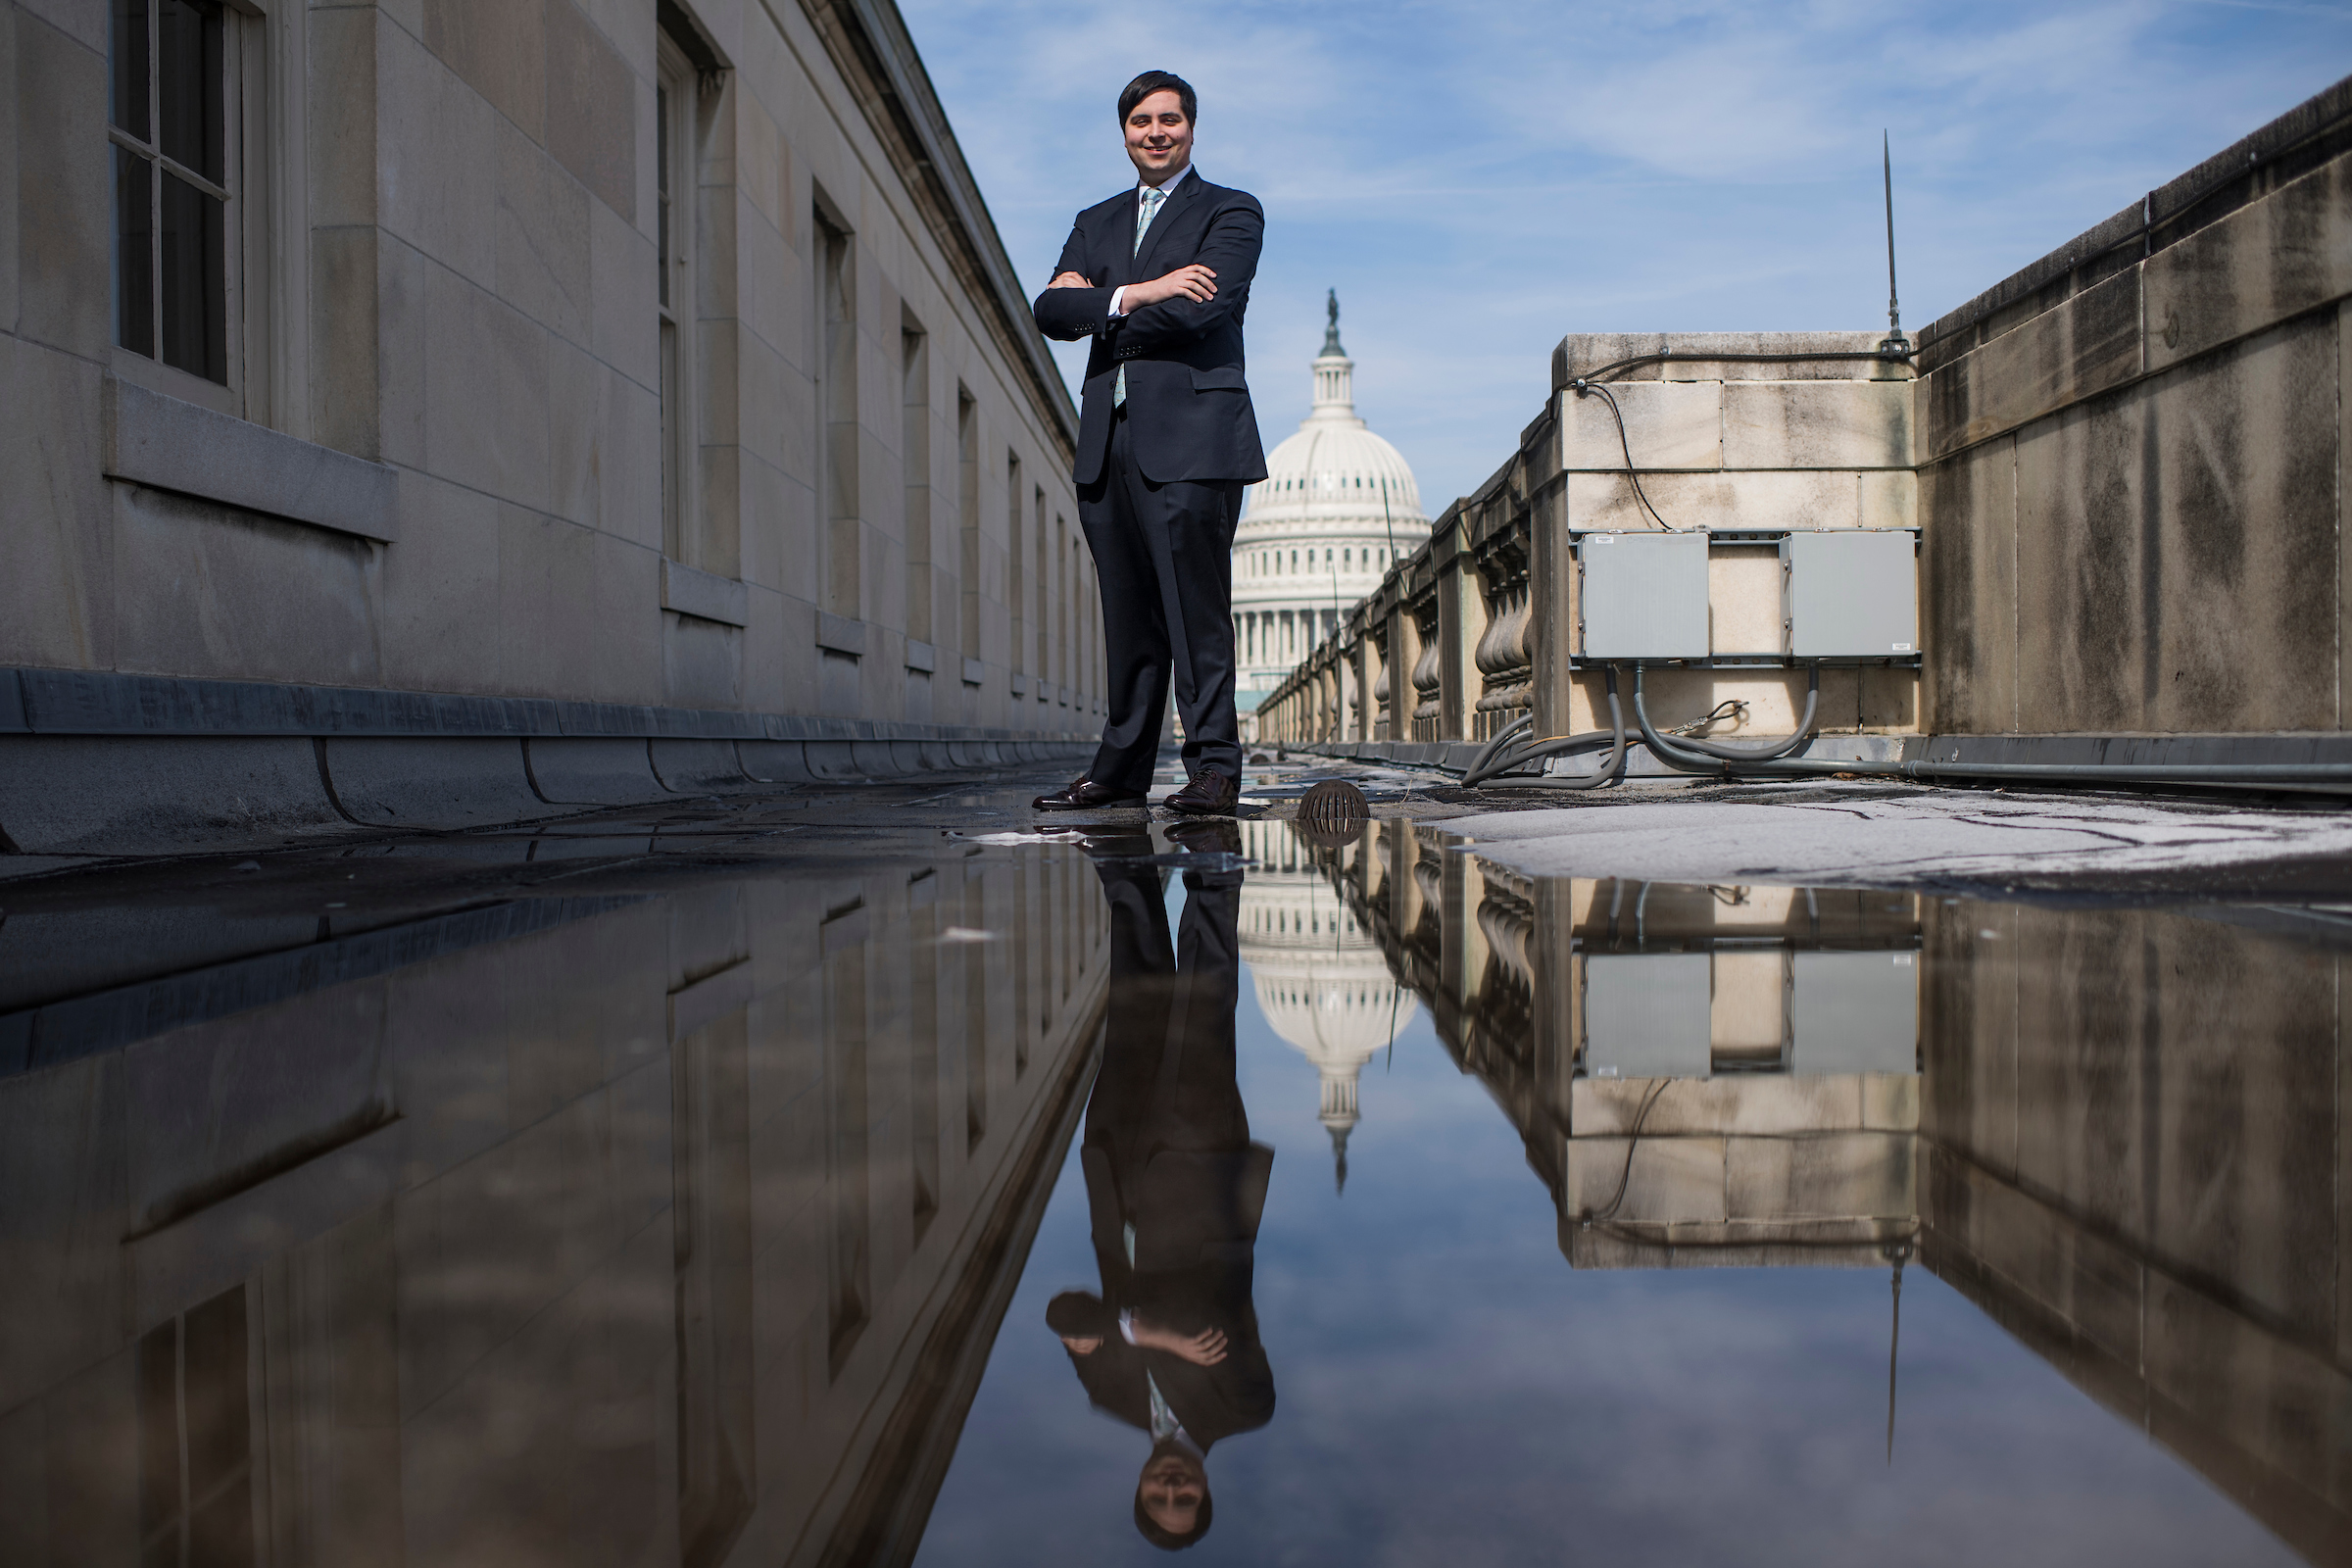 UNITED STATES - FEBRUARY 21: Jeffrey Kempler, from the office of Rep. Jim Banks, R-Ind., is pictured on top of Longworth Building on Thursday, February 21, 2019. (Photo By Tom Williams/CQ Roll Call)